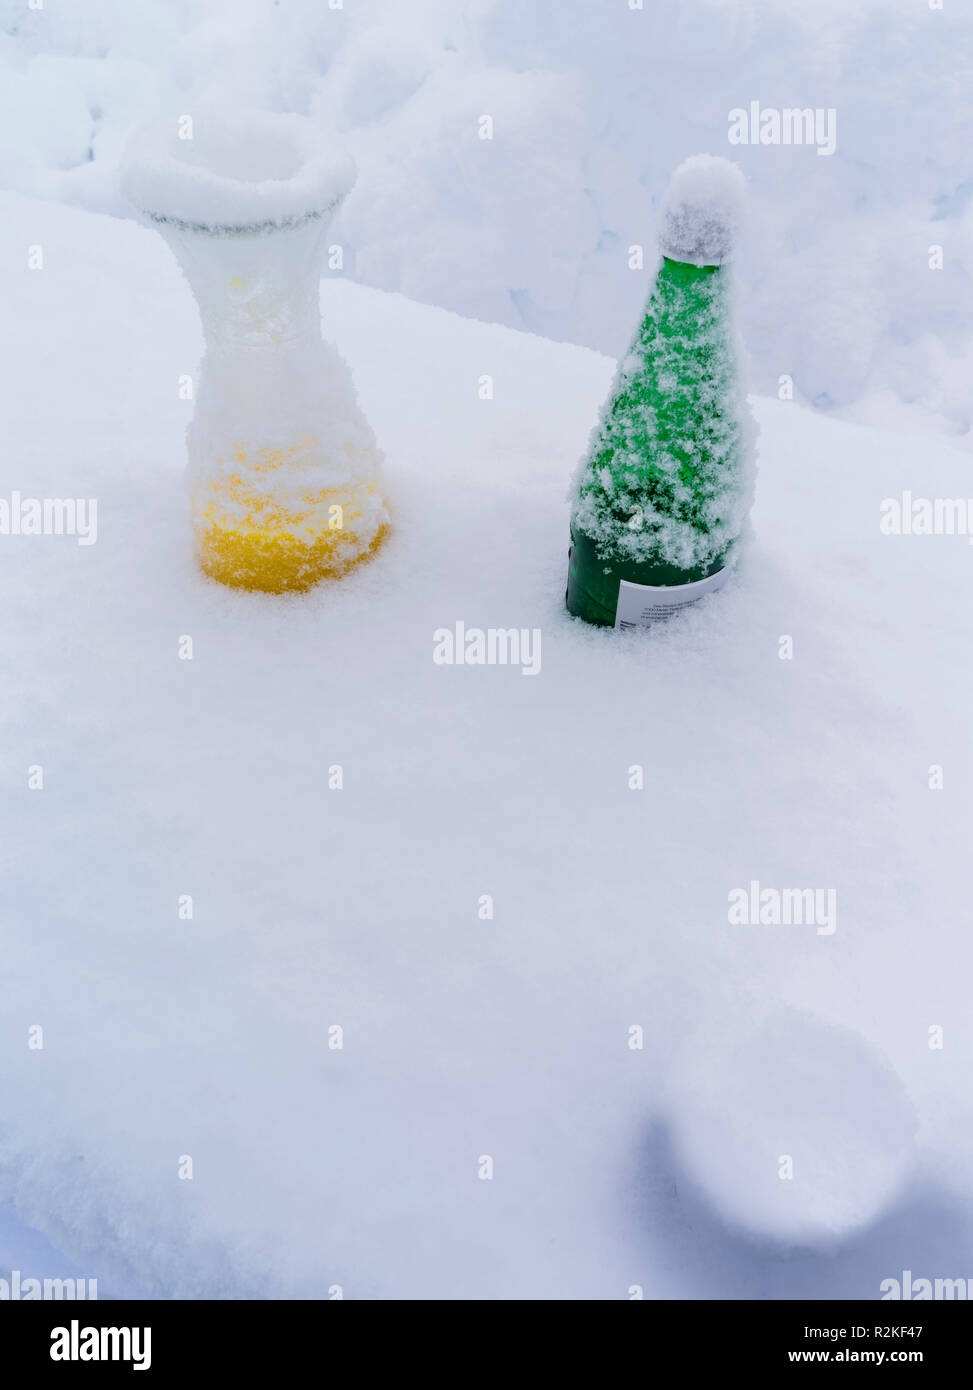 Drink remains in the snow after a party in winter - Stock Image